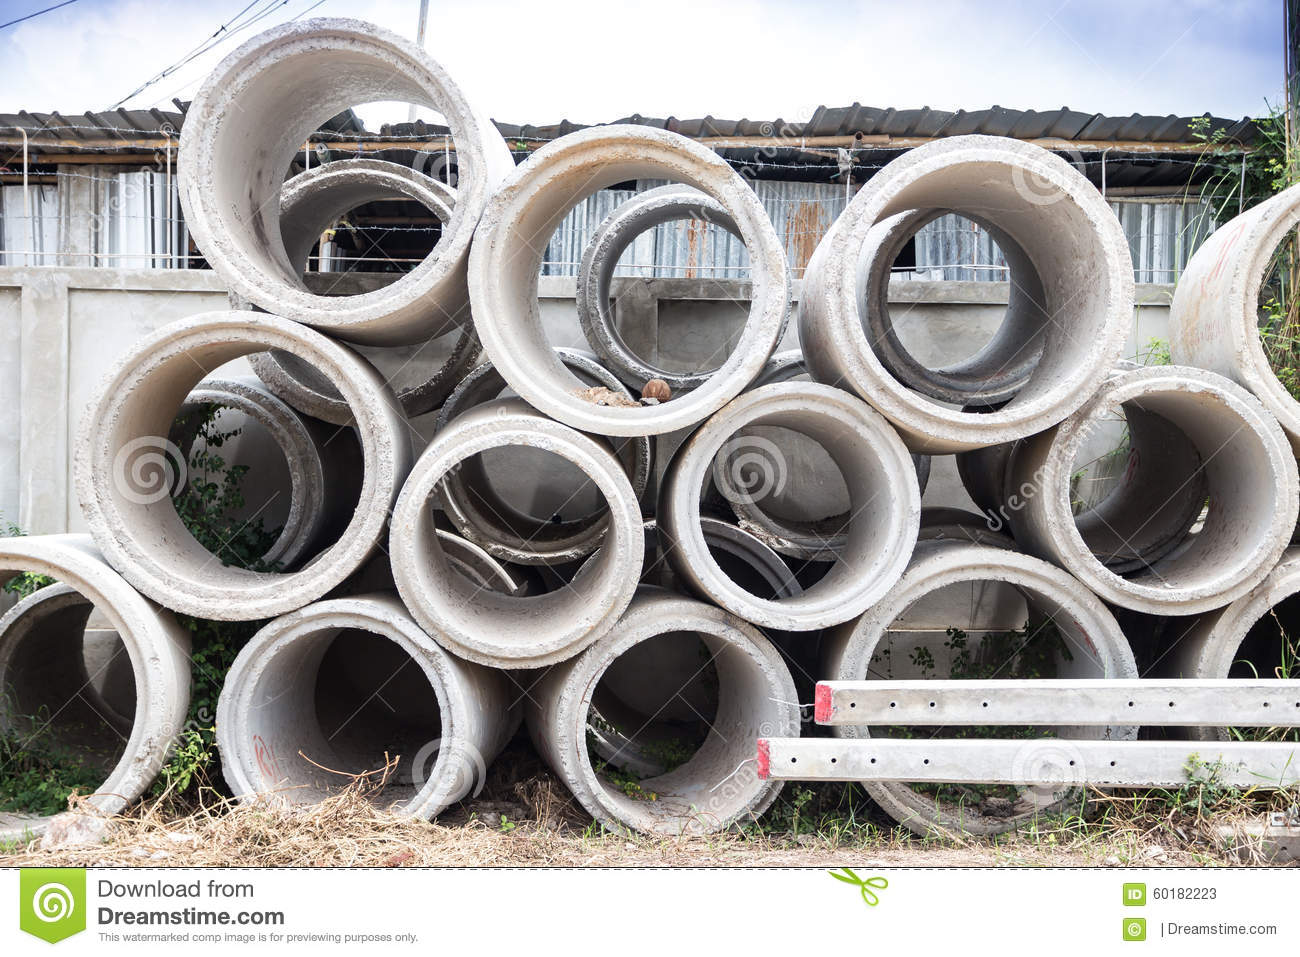 Concrete pipe big pipes stacked circular 60182223 jpg